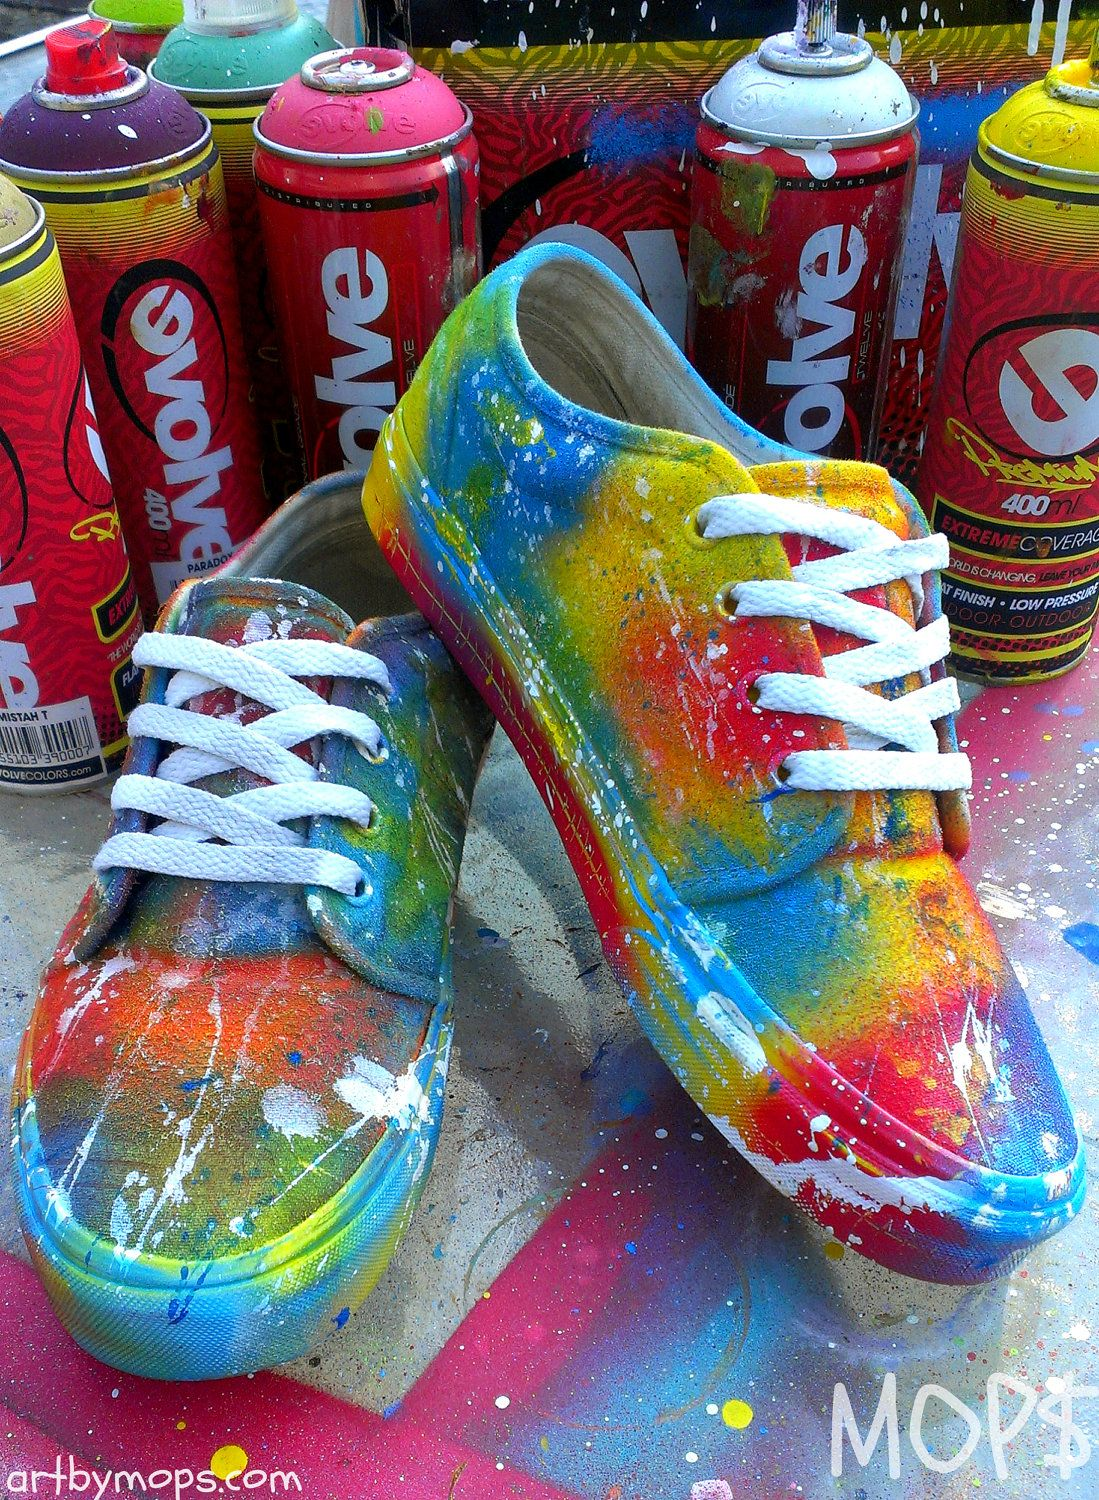 CUSTOM Painted VANS Shoes by MOPS in a Graffiti by AbstractCeleb ...